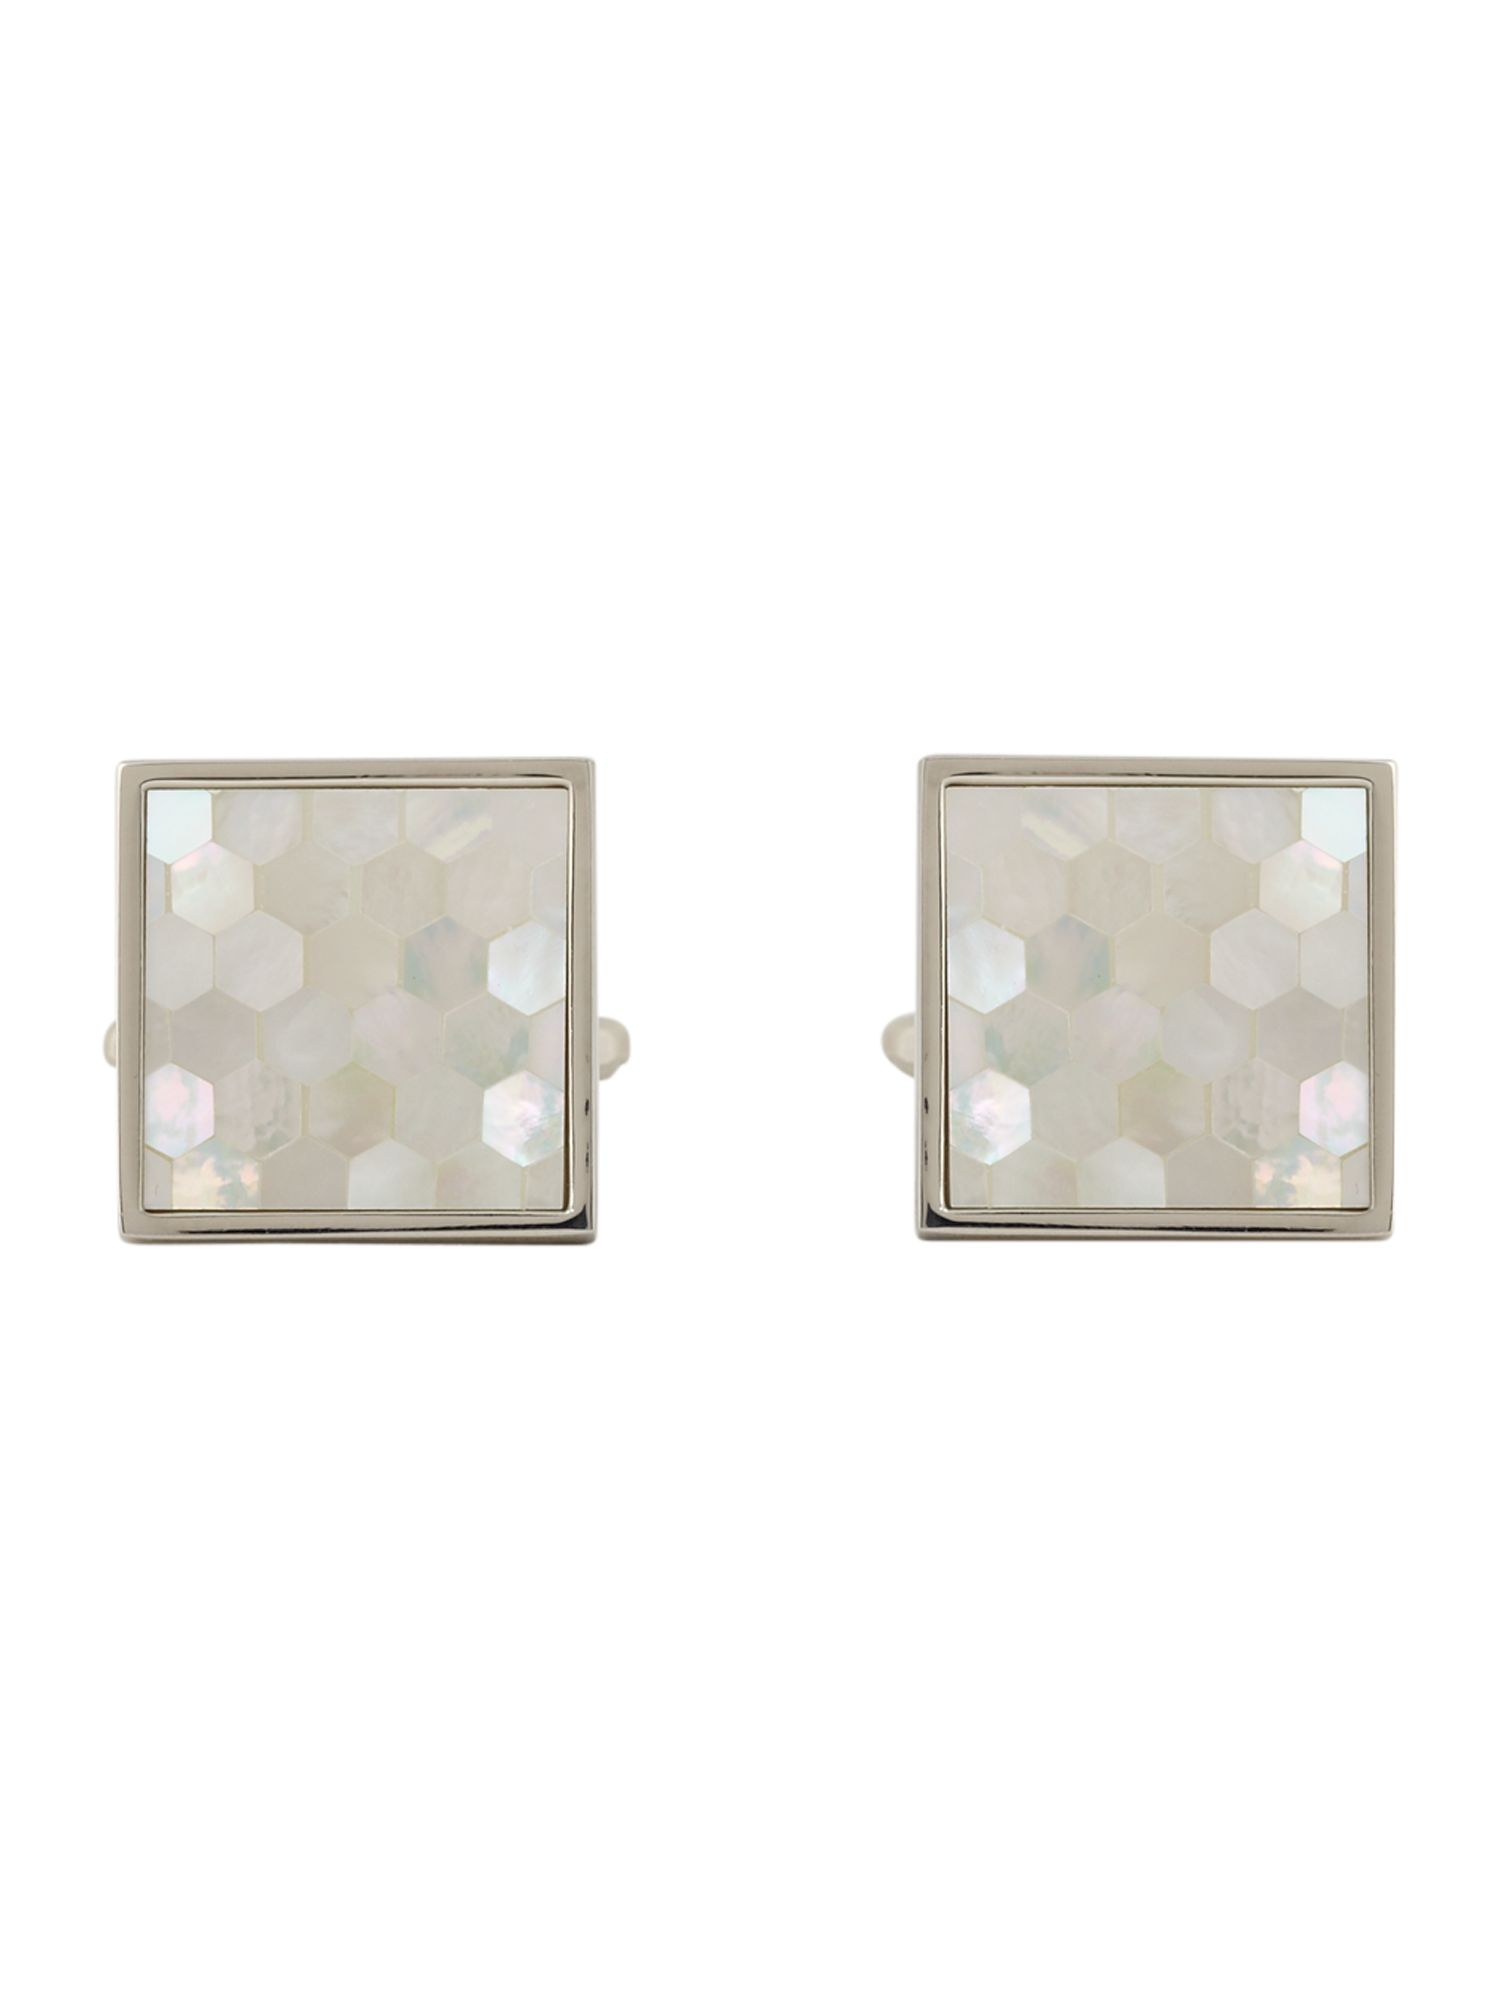 Square honeycomb mother of pearl cufflinks